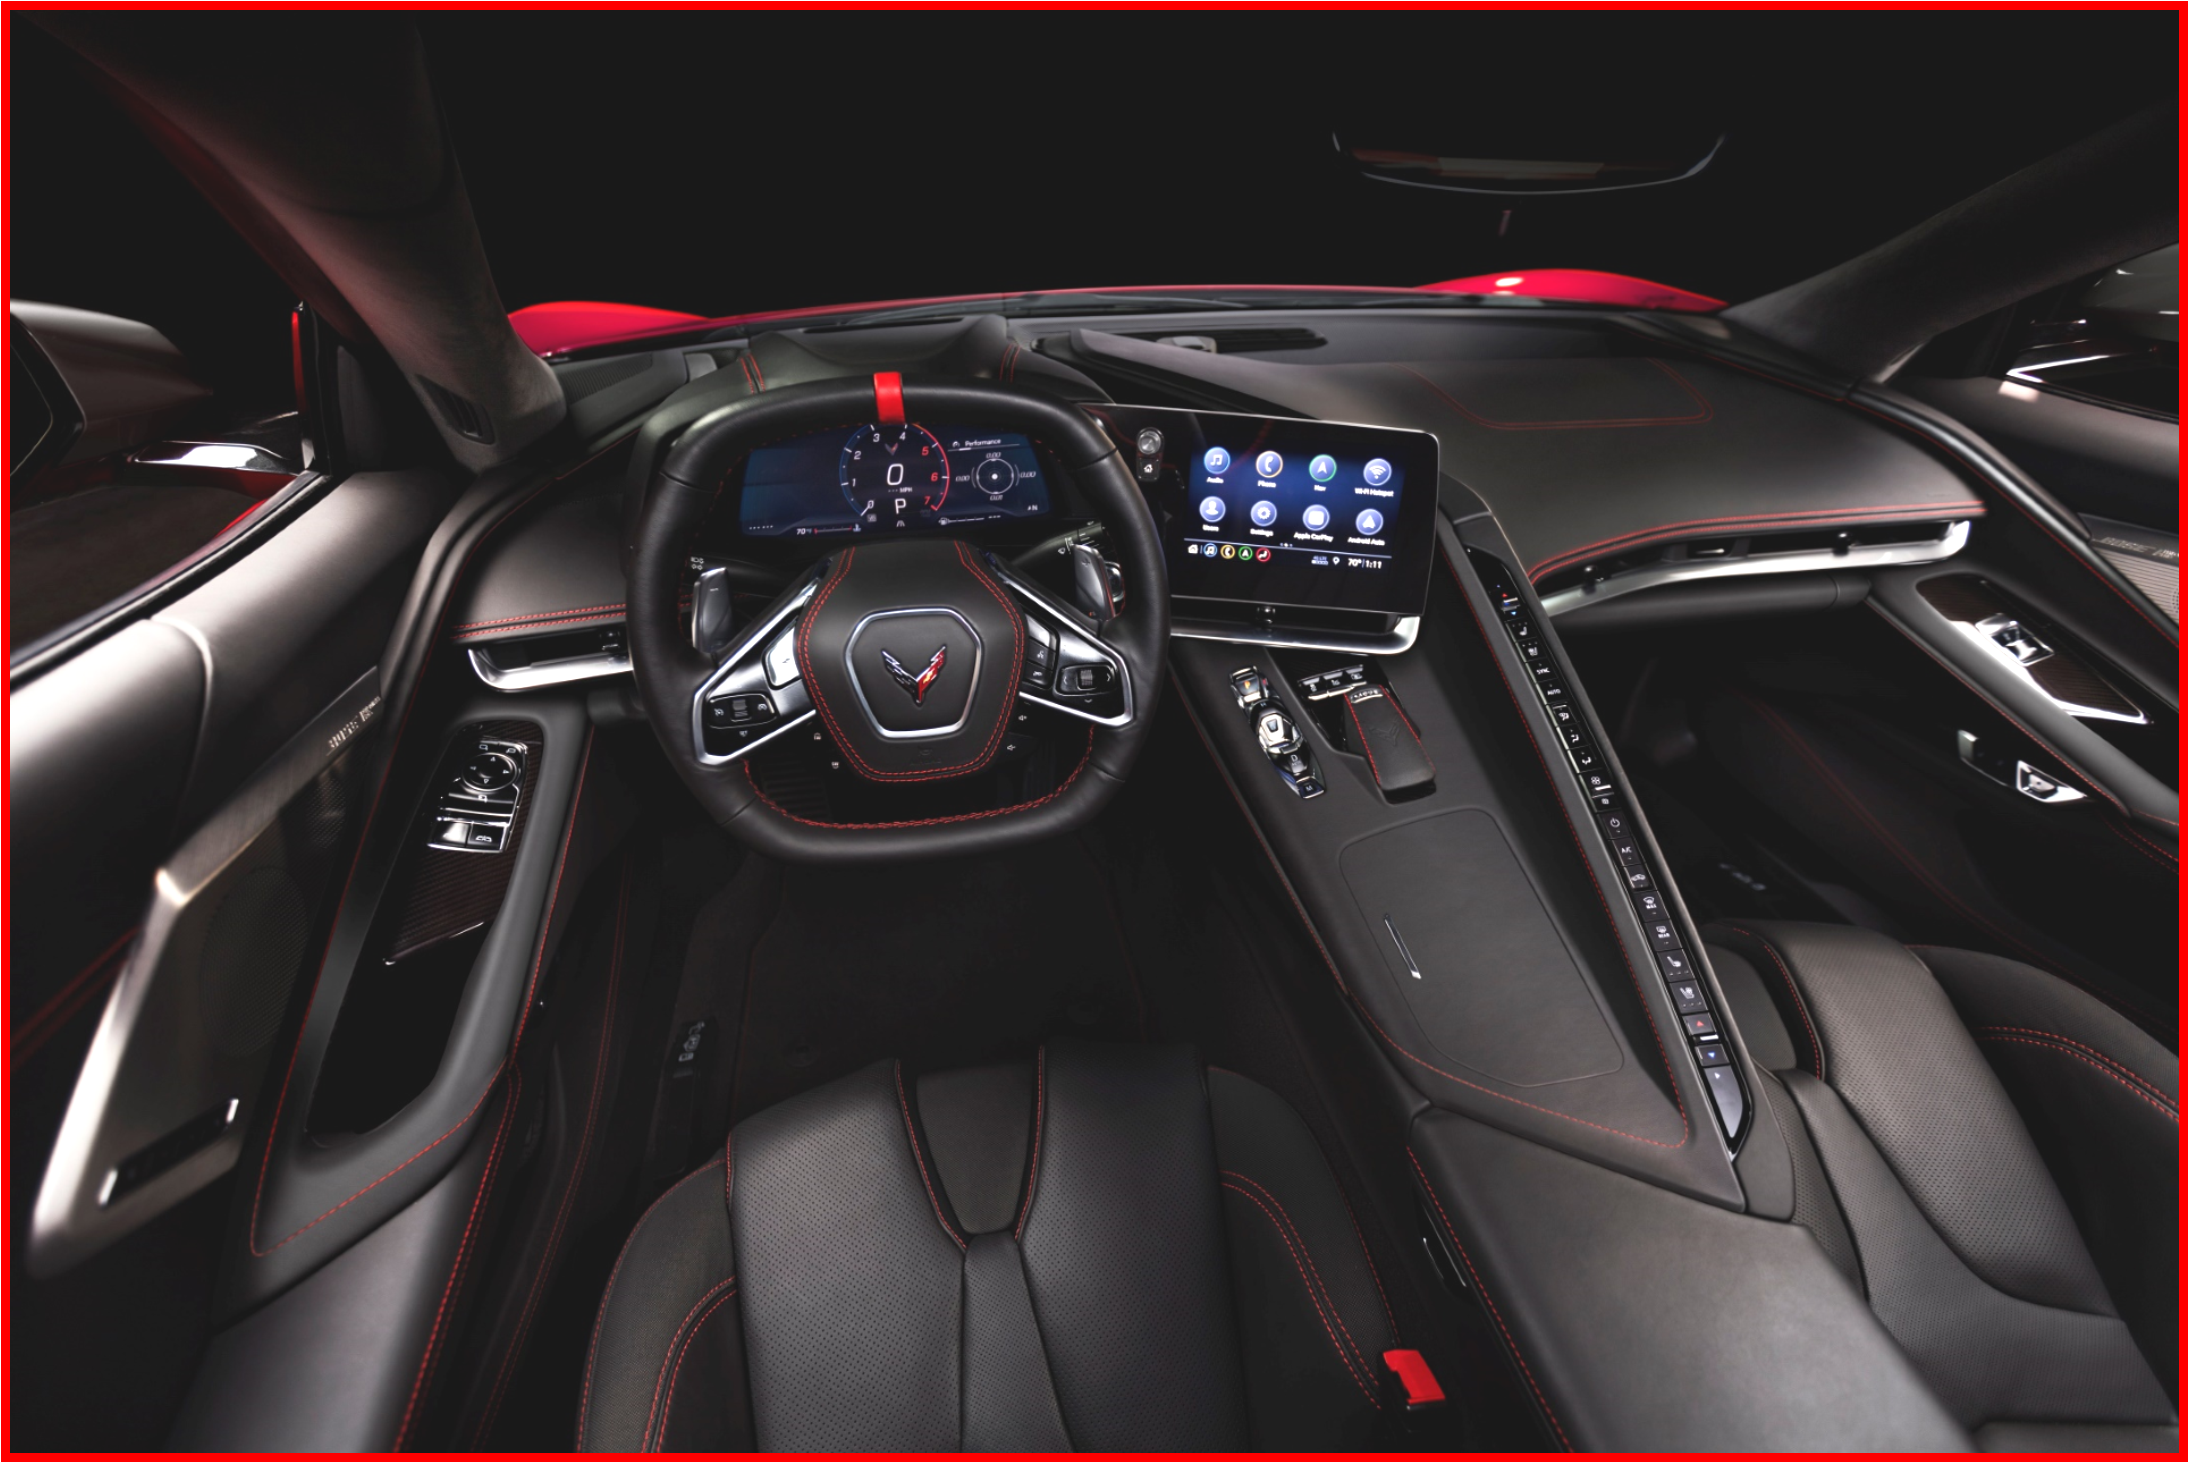 AutoInformed.com on 2020 Chevrolet Corvette Stingray Interior